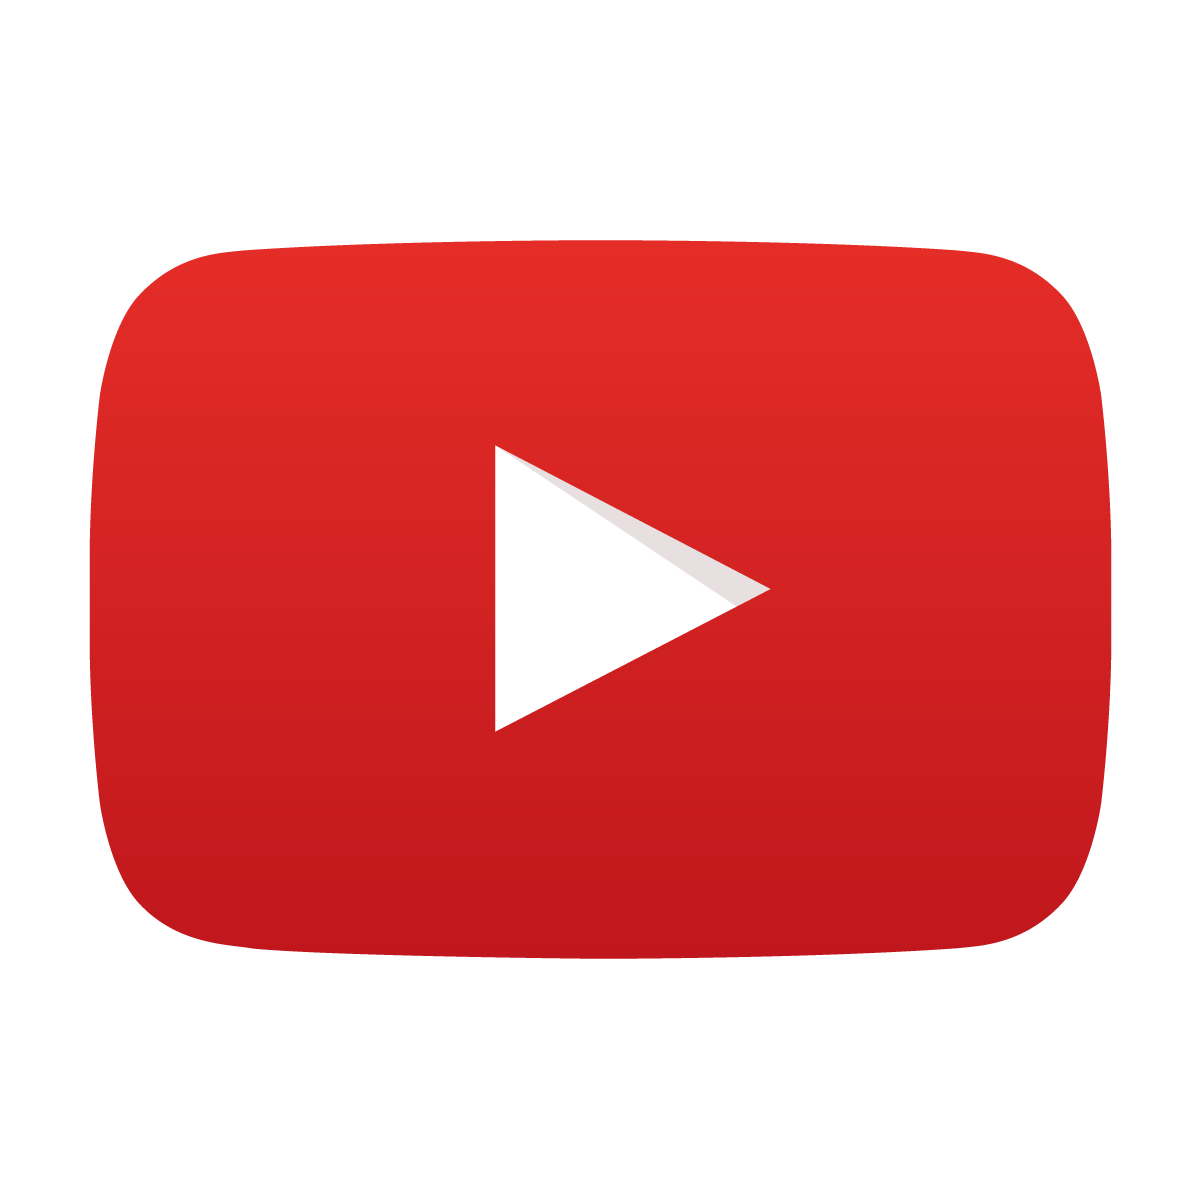 Youtube logo png. Transparent pictures free icons